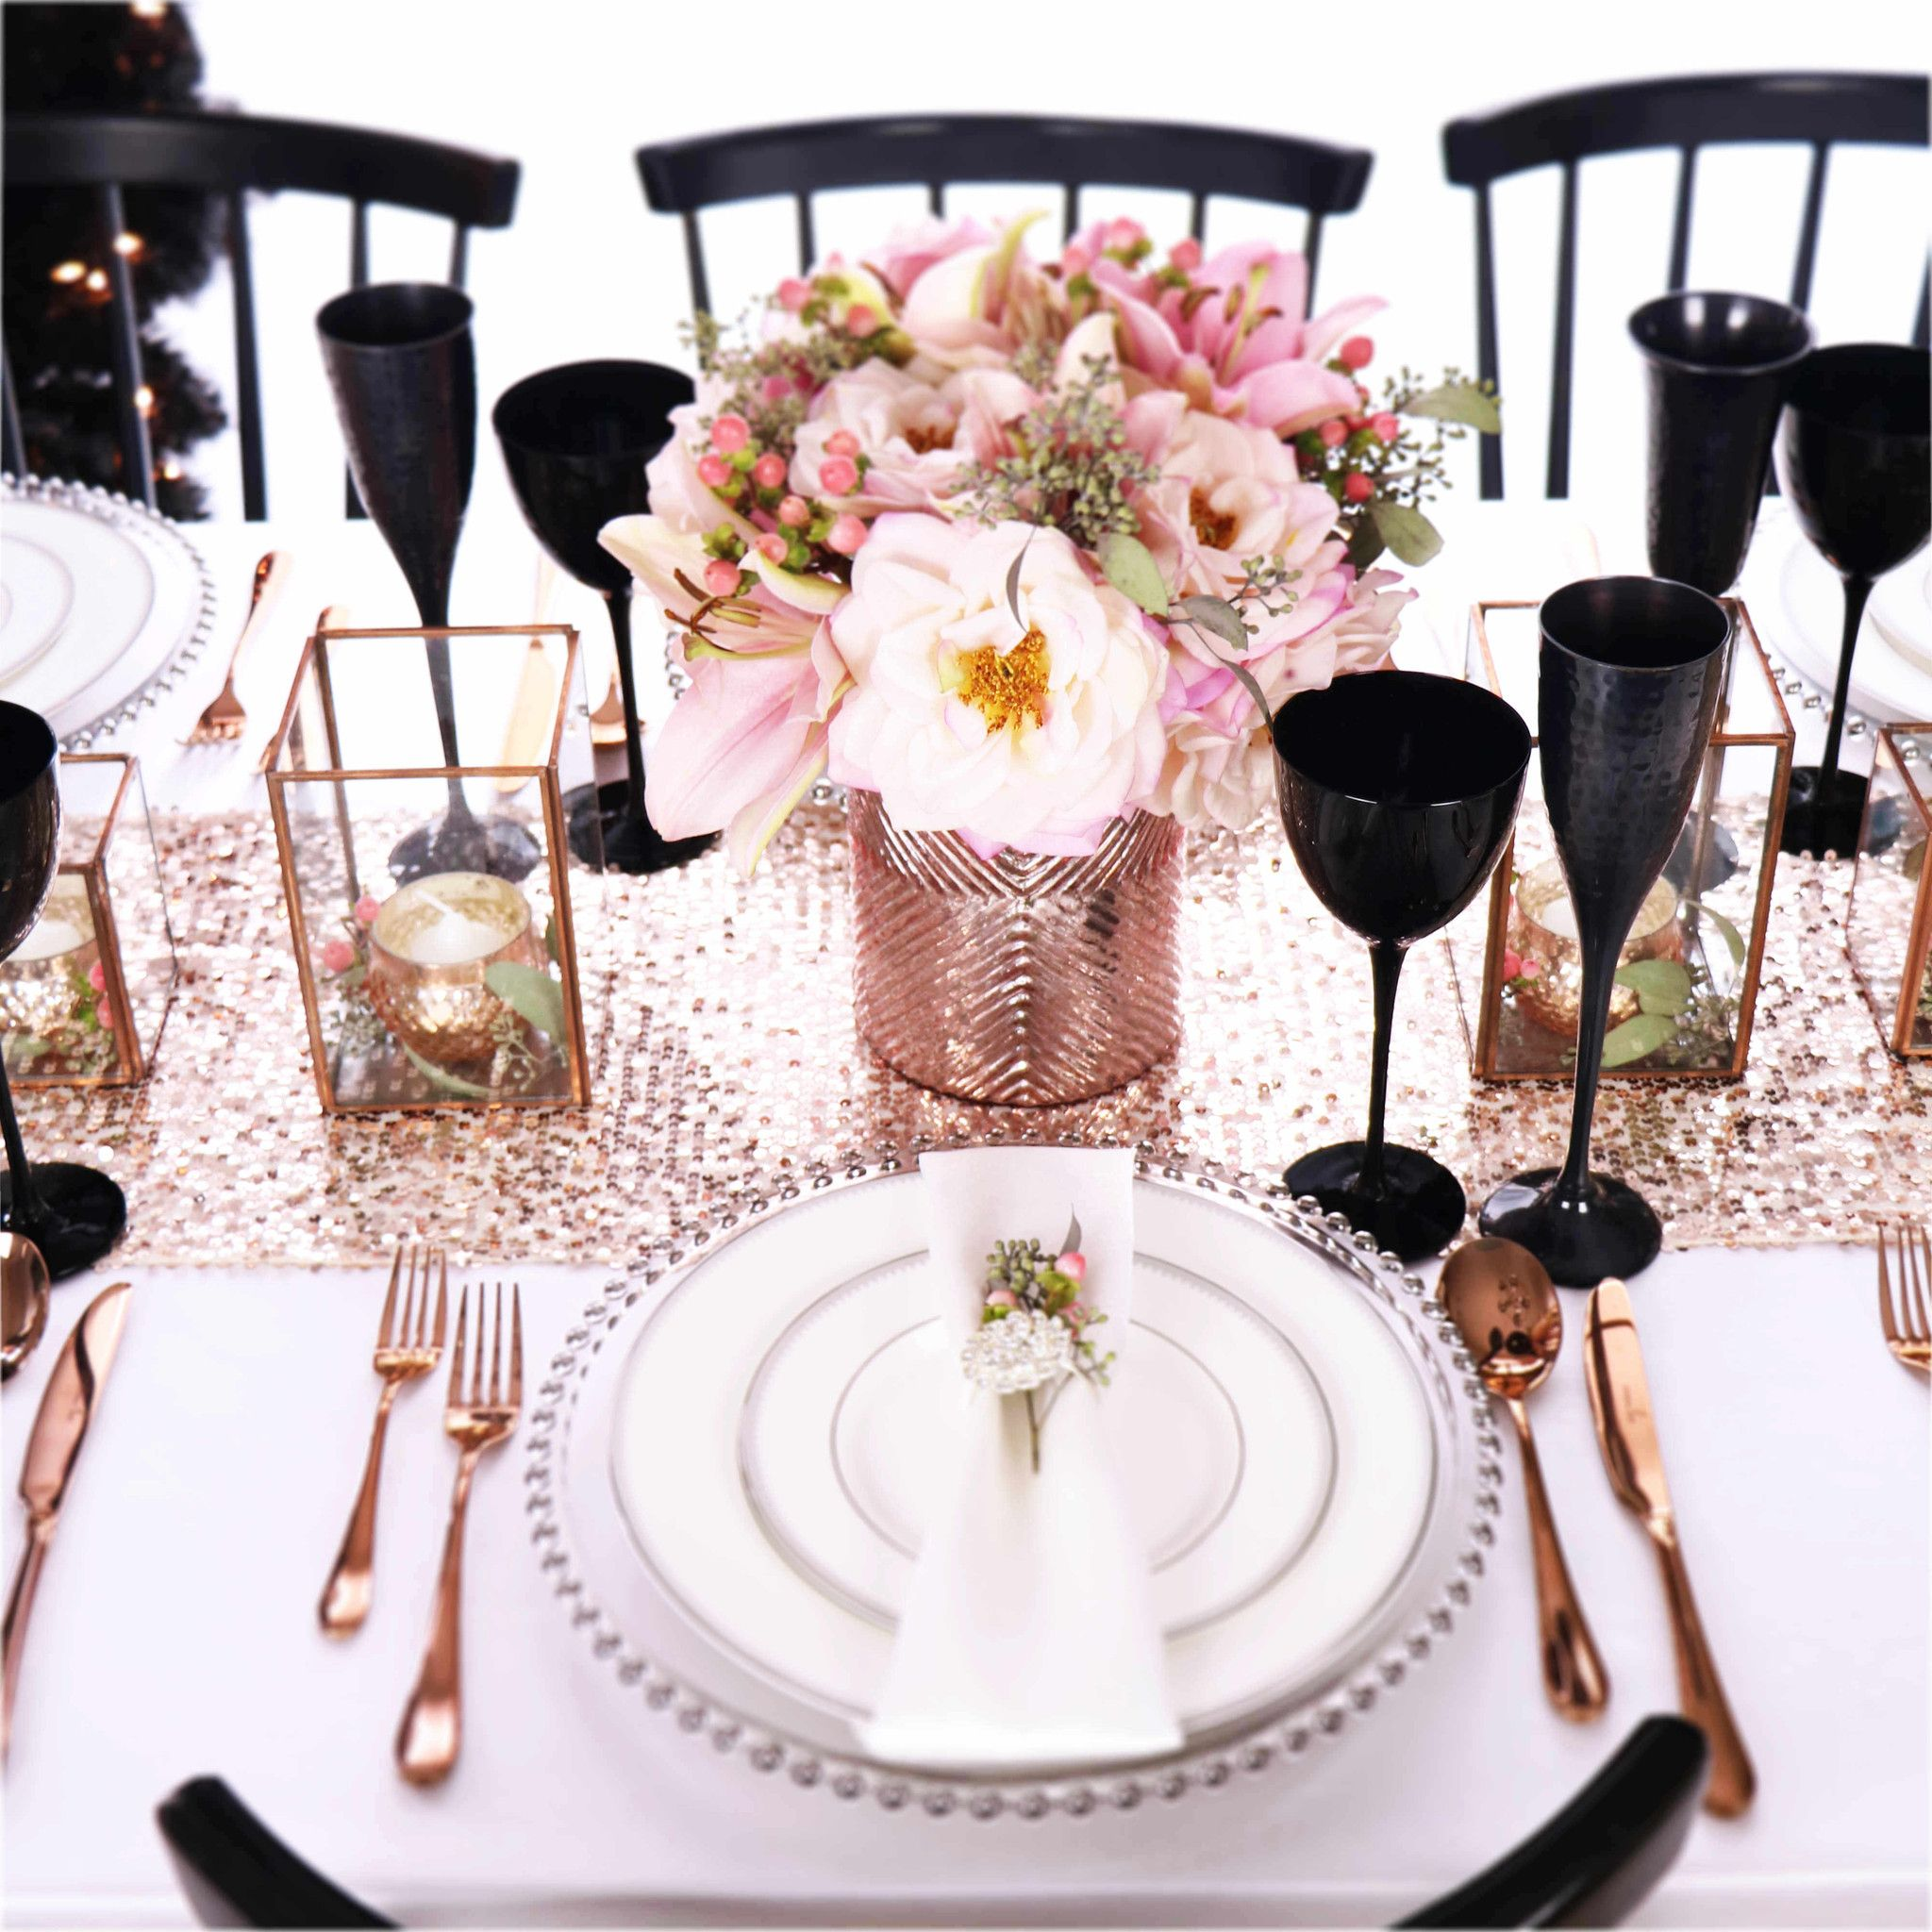 16 Rose Gold And Copper Details For Stylish Interior Decor: Rose Gold Copper Black Silver Christmas Sequin Table Setting View